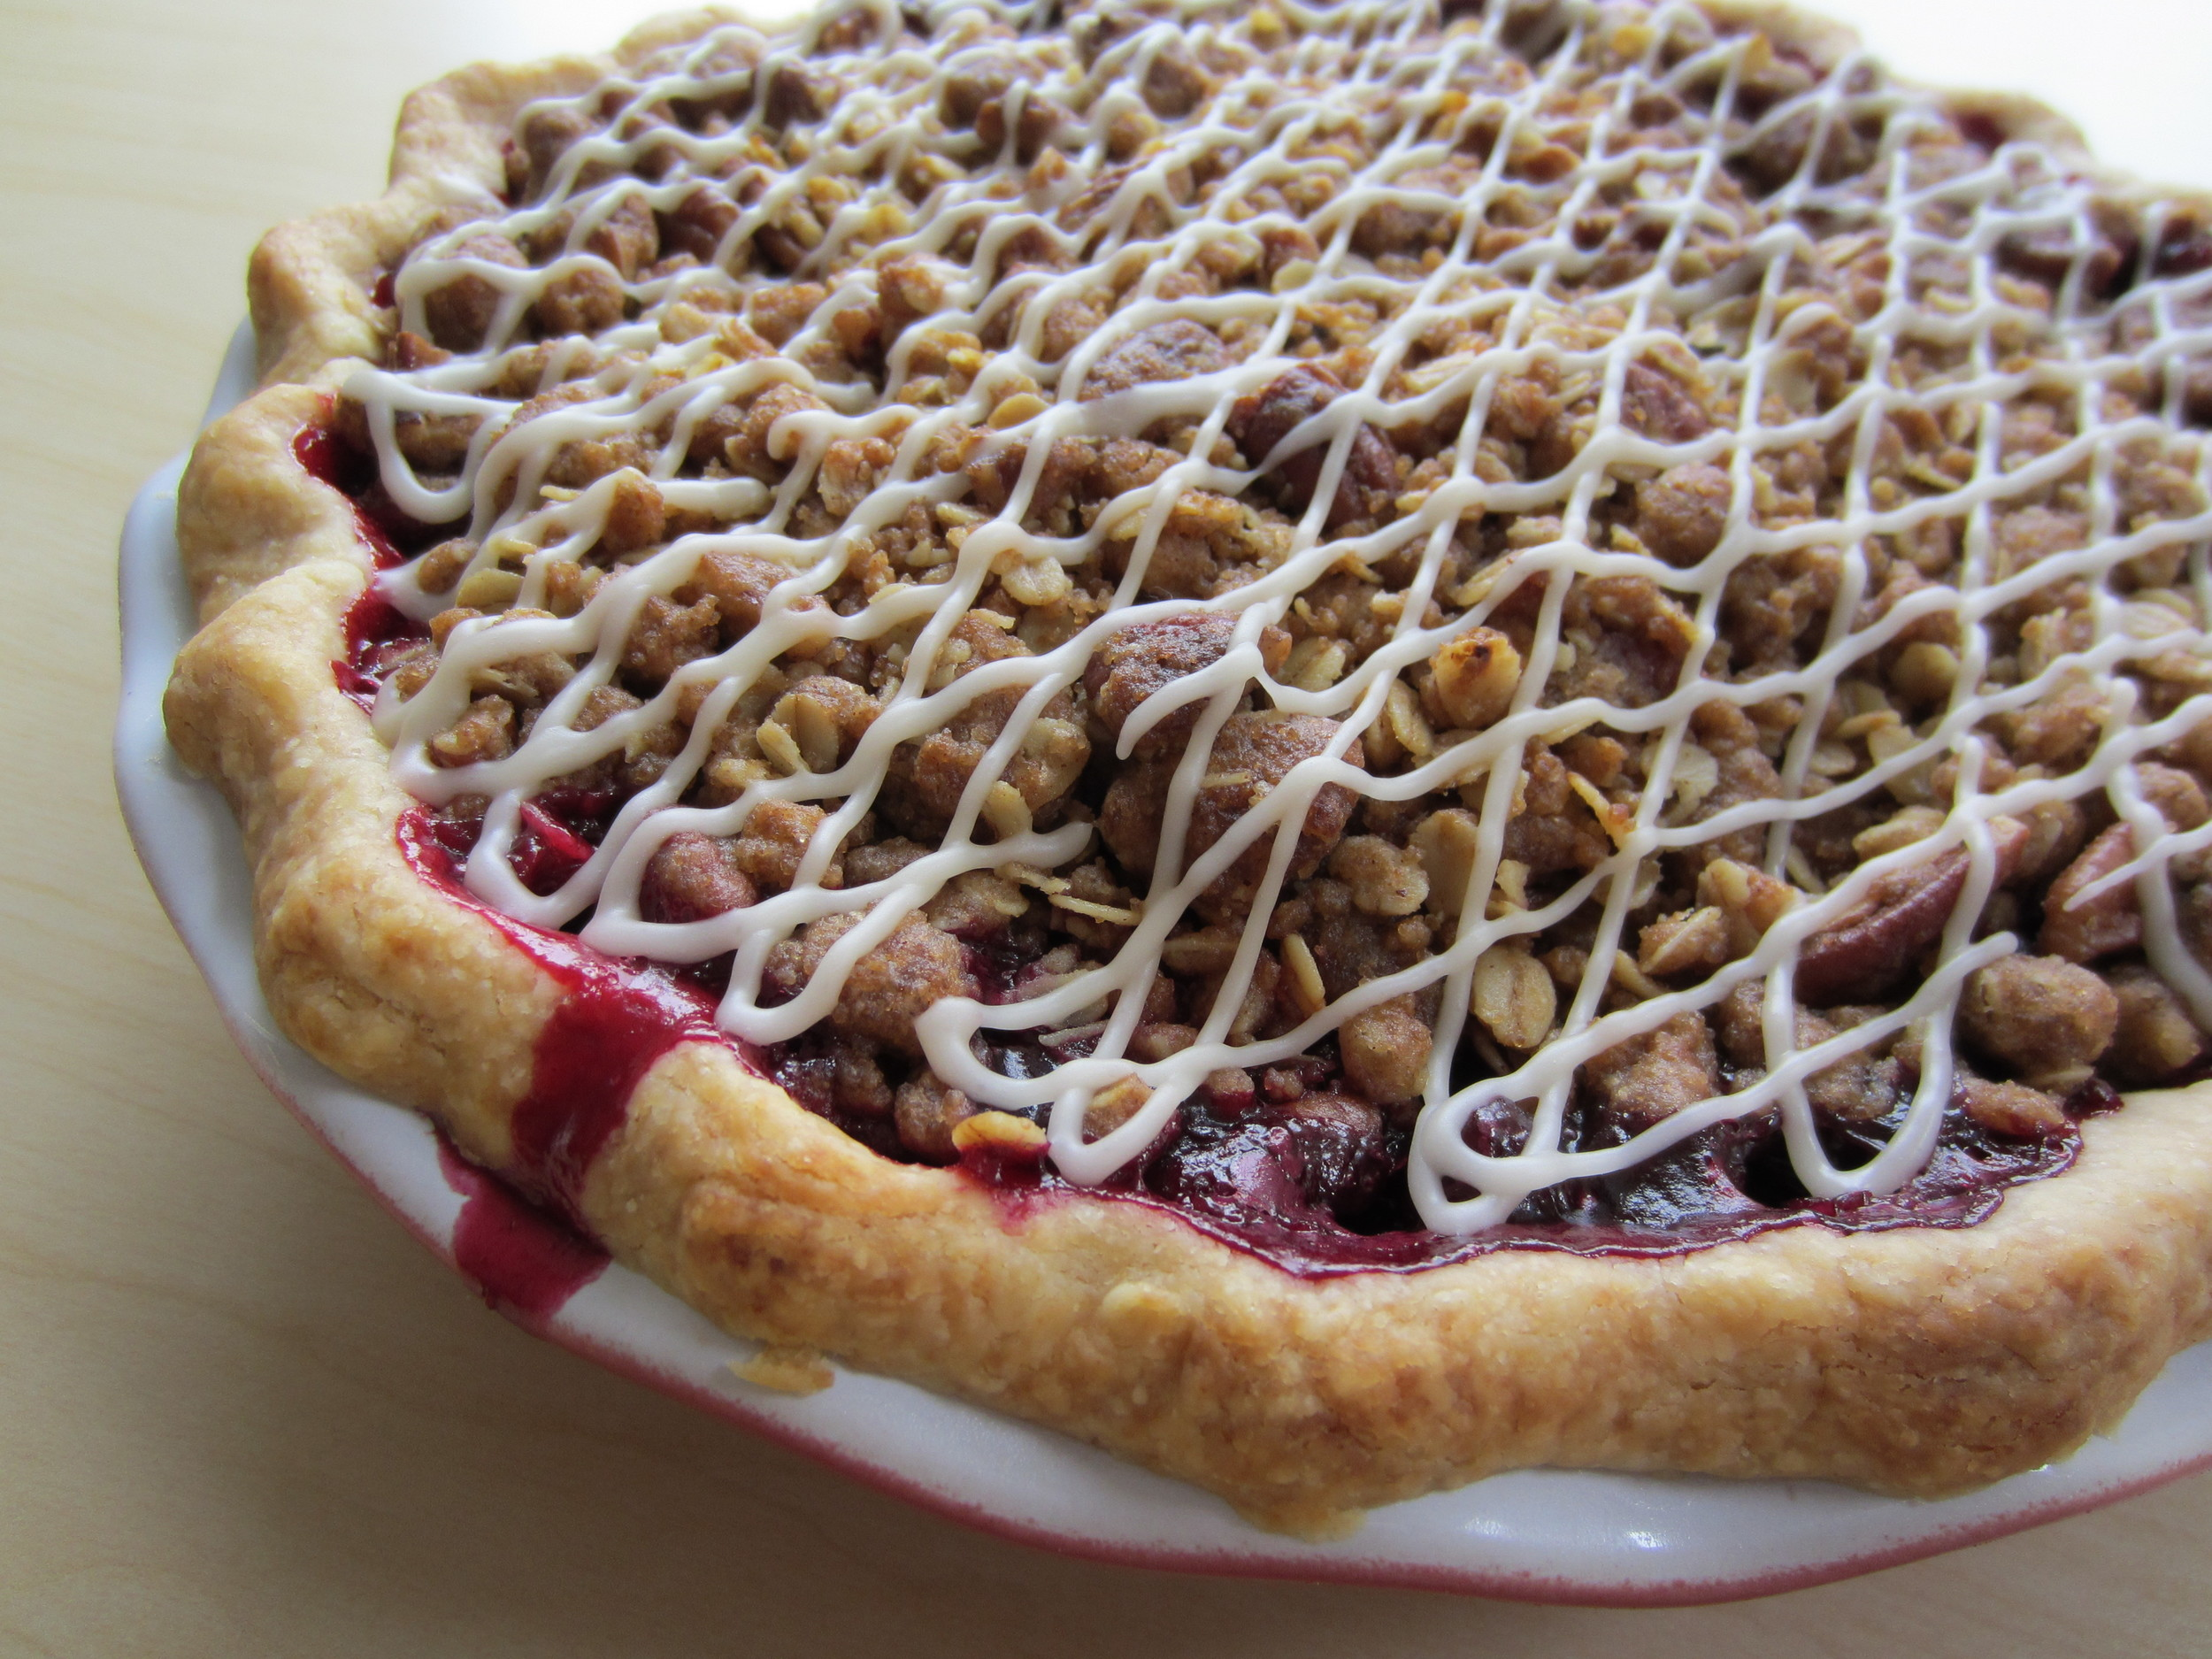 Vegan Blueberry Cranberry Pie with Pecan Streusel Topping